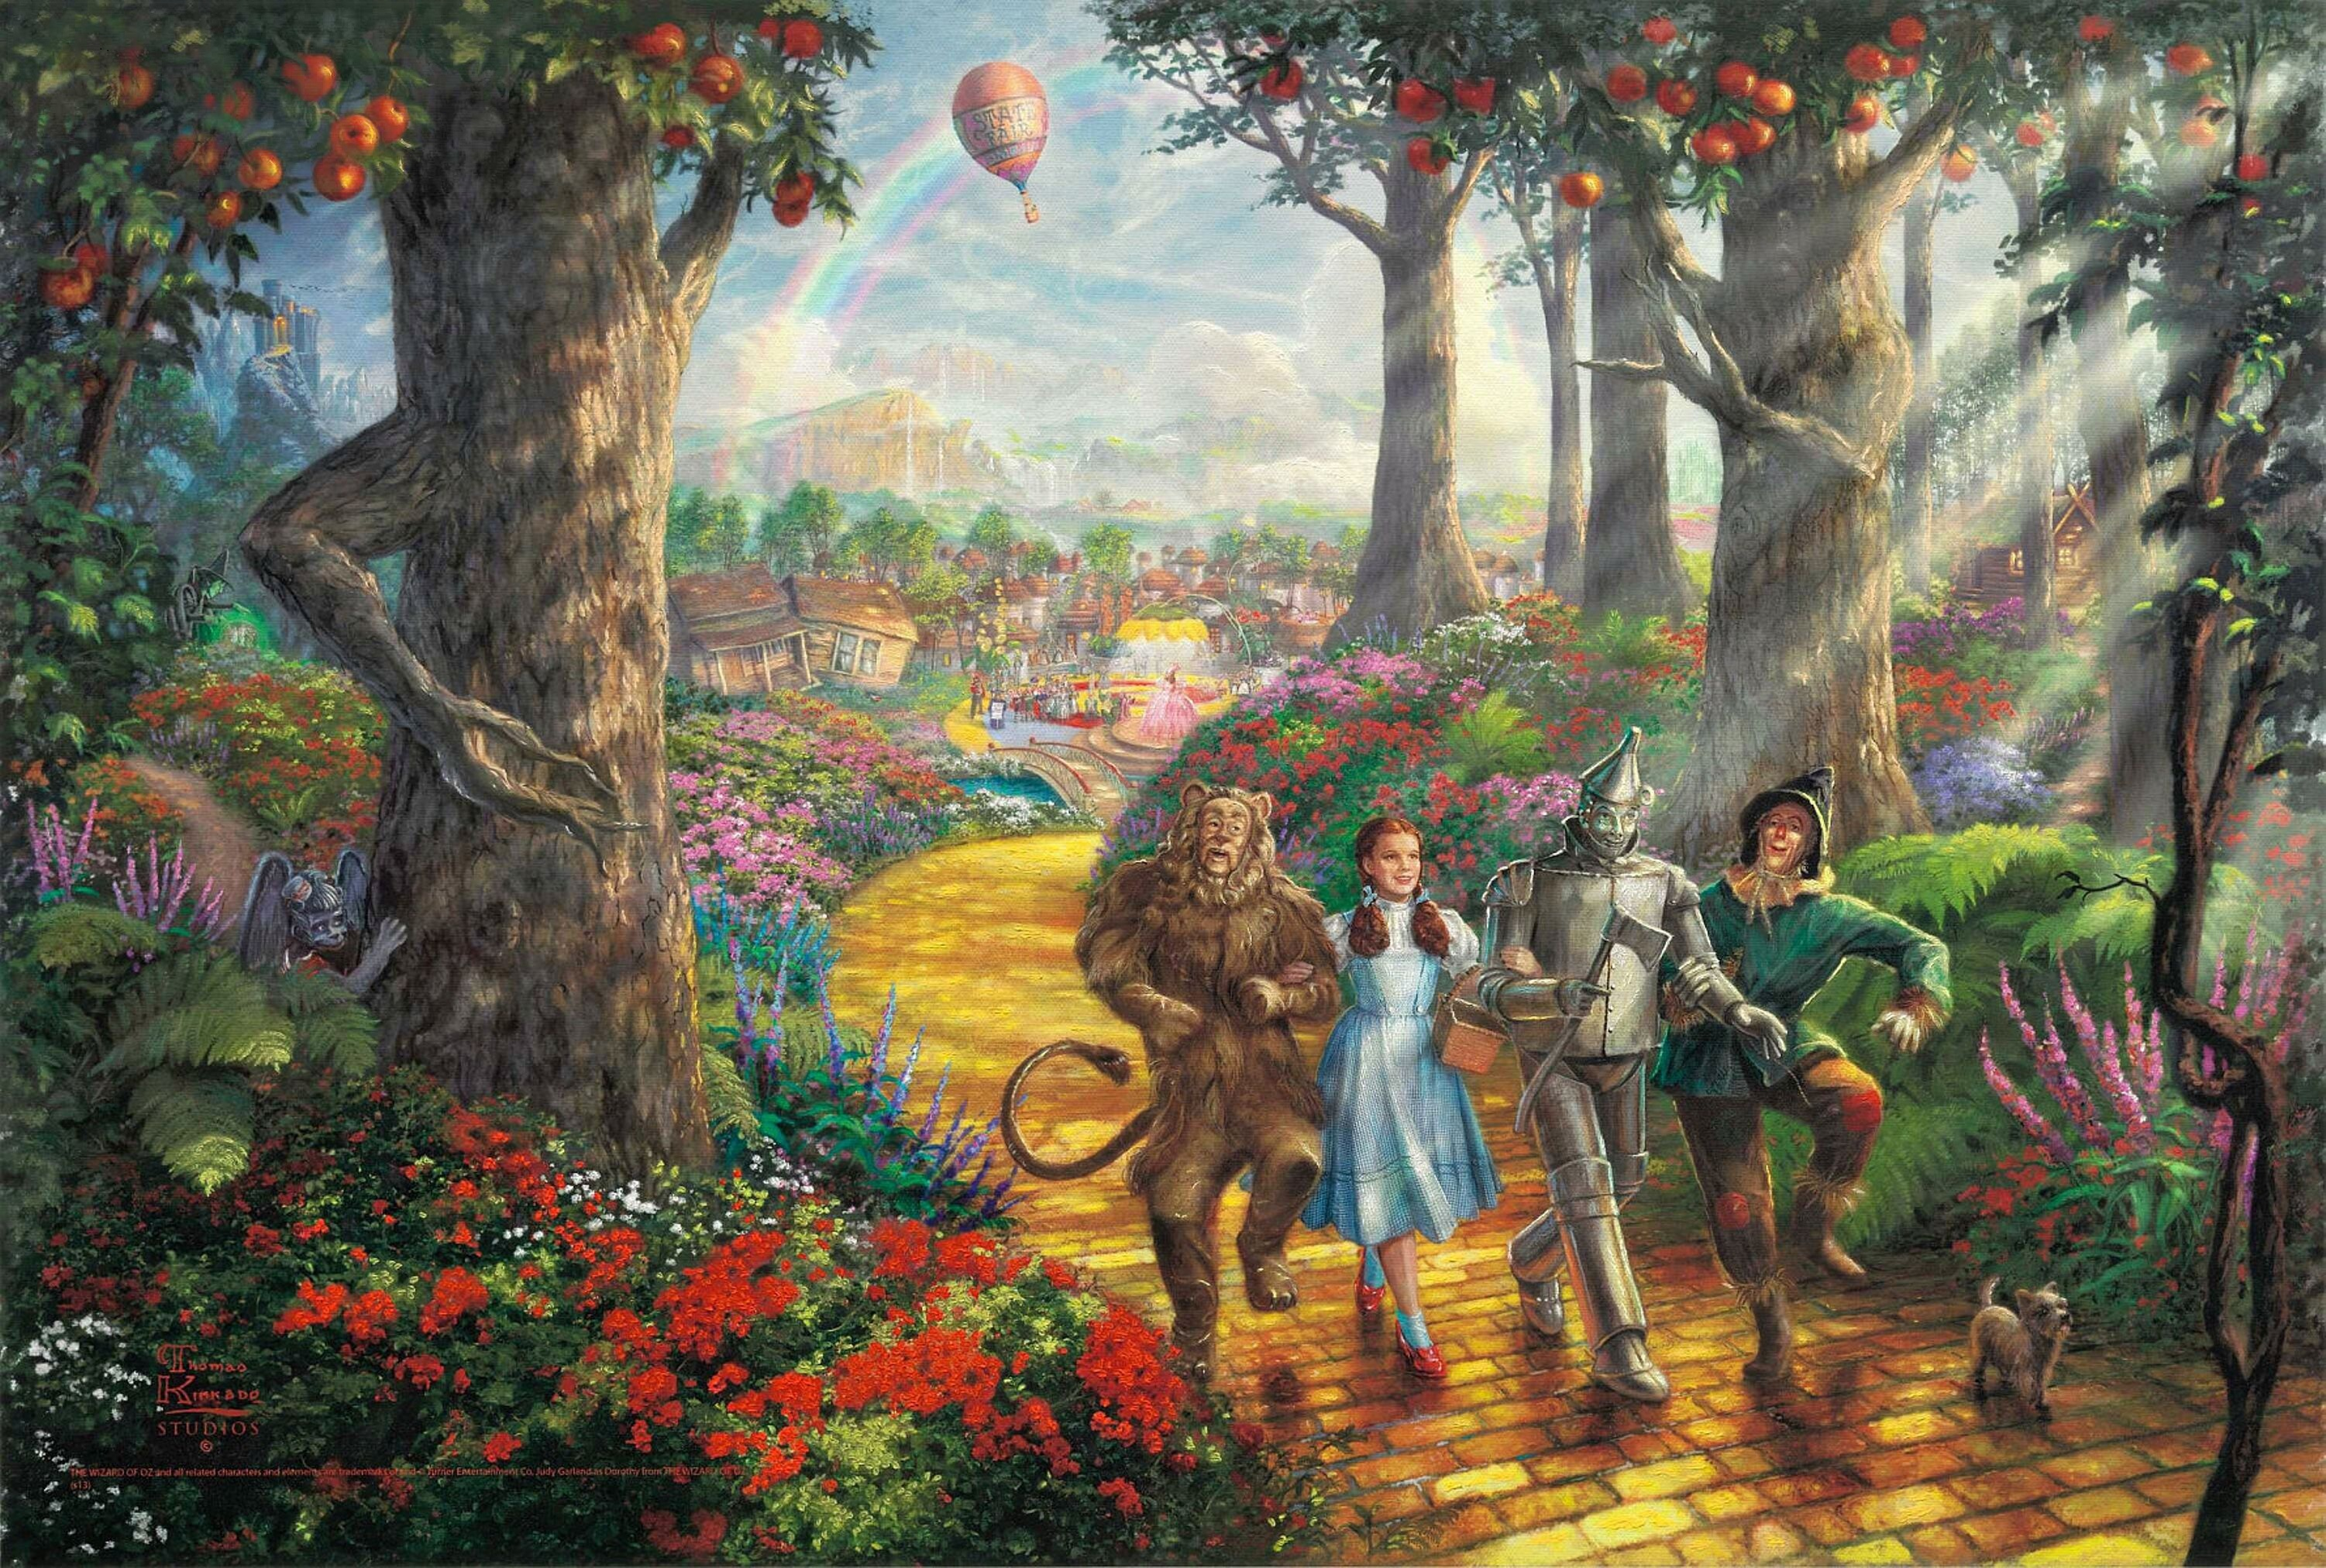 Thomas Kinkade Disney Wallpapers Cartoon Thomas Kinkade 3002x2024